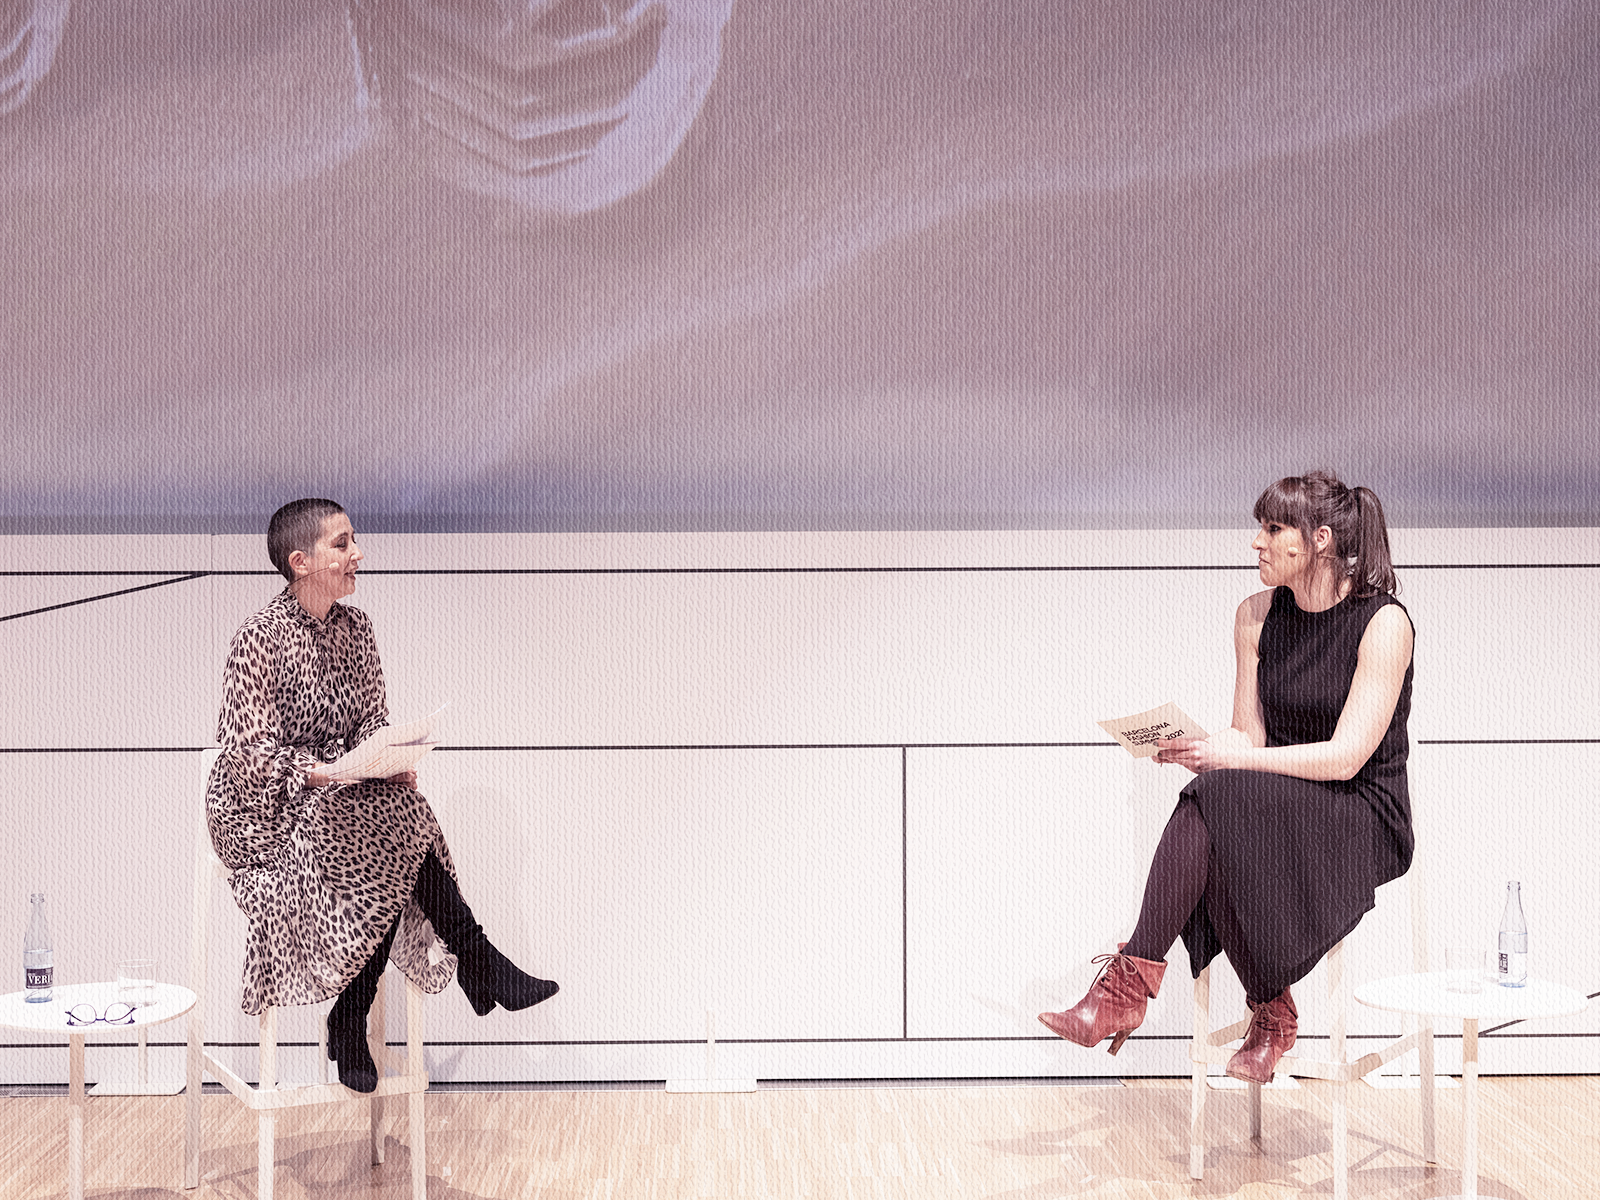 /bfs21/slideshows/9.png